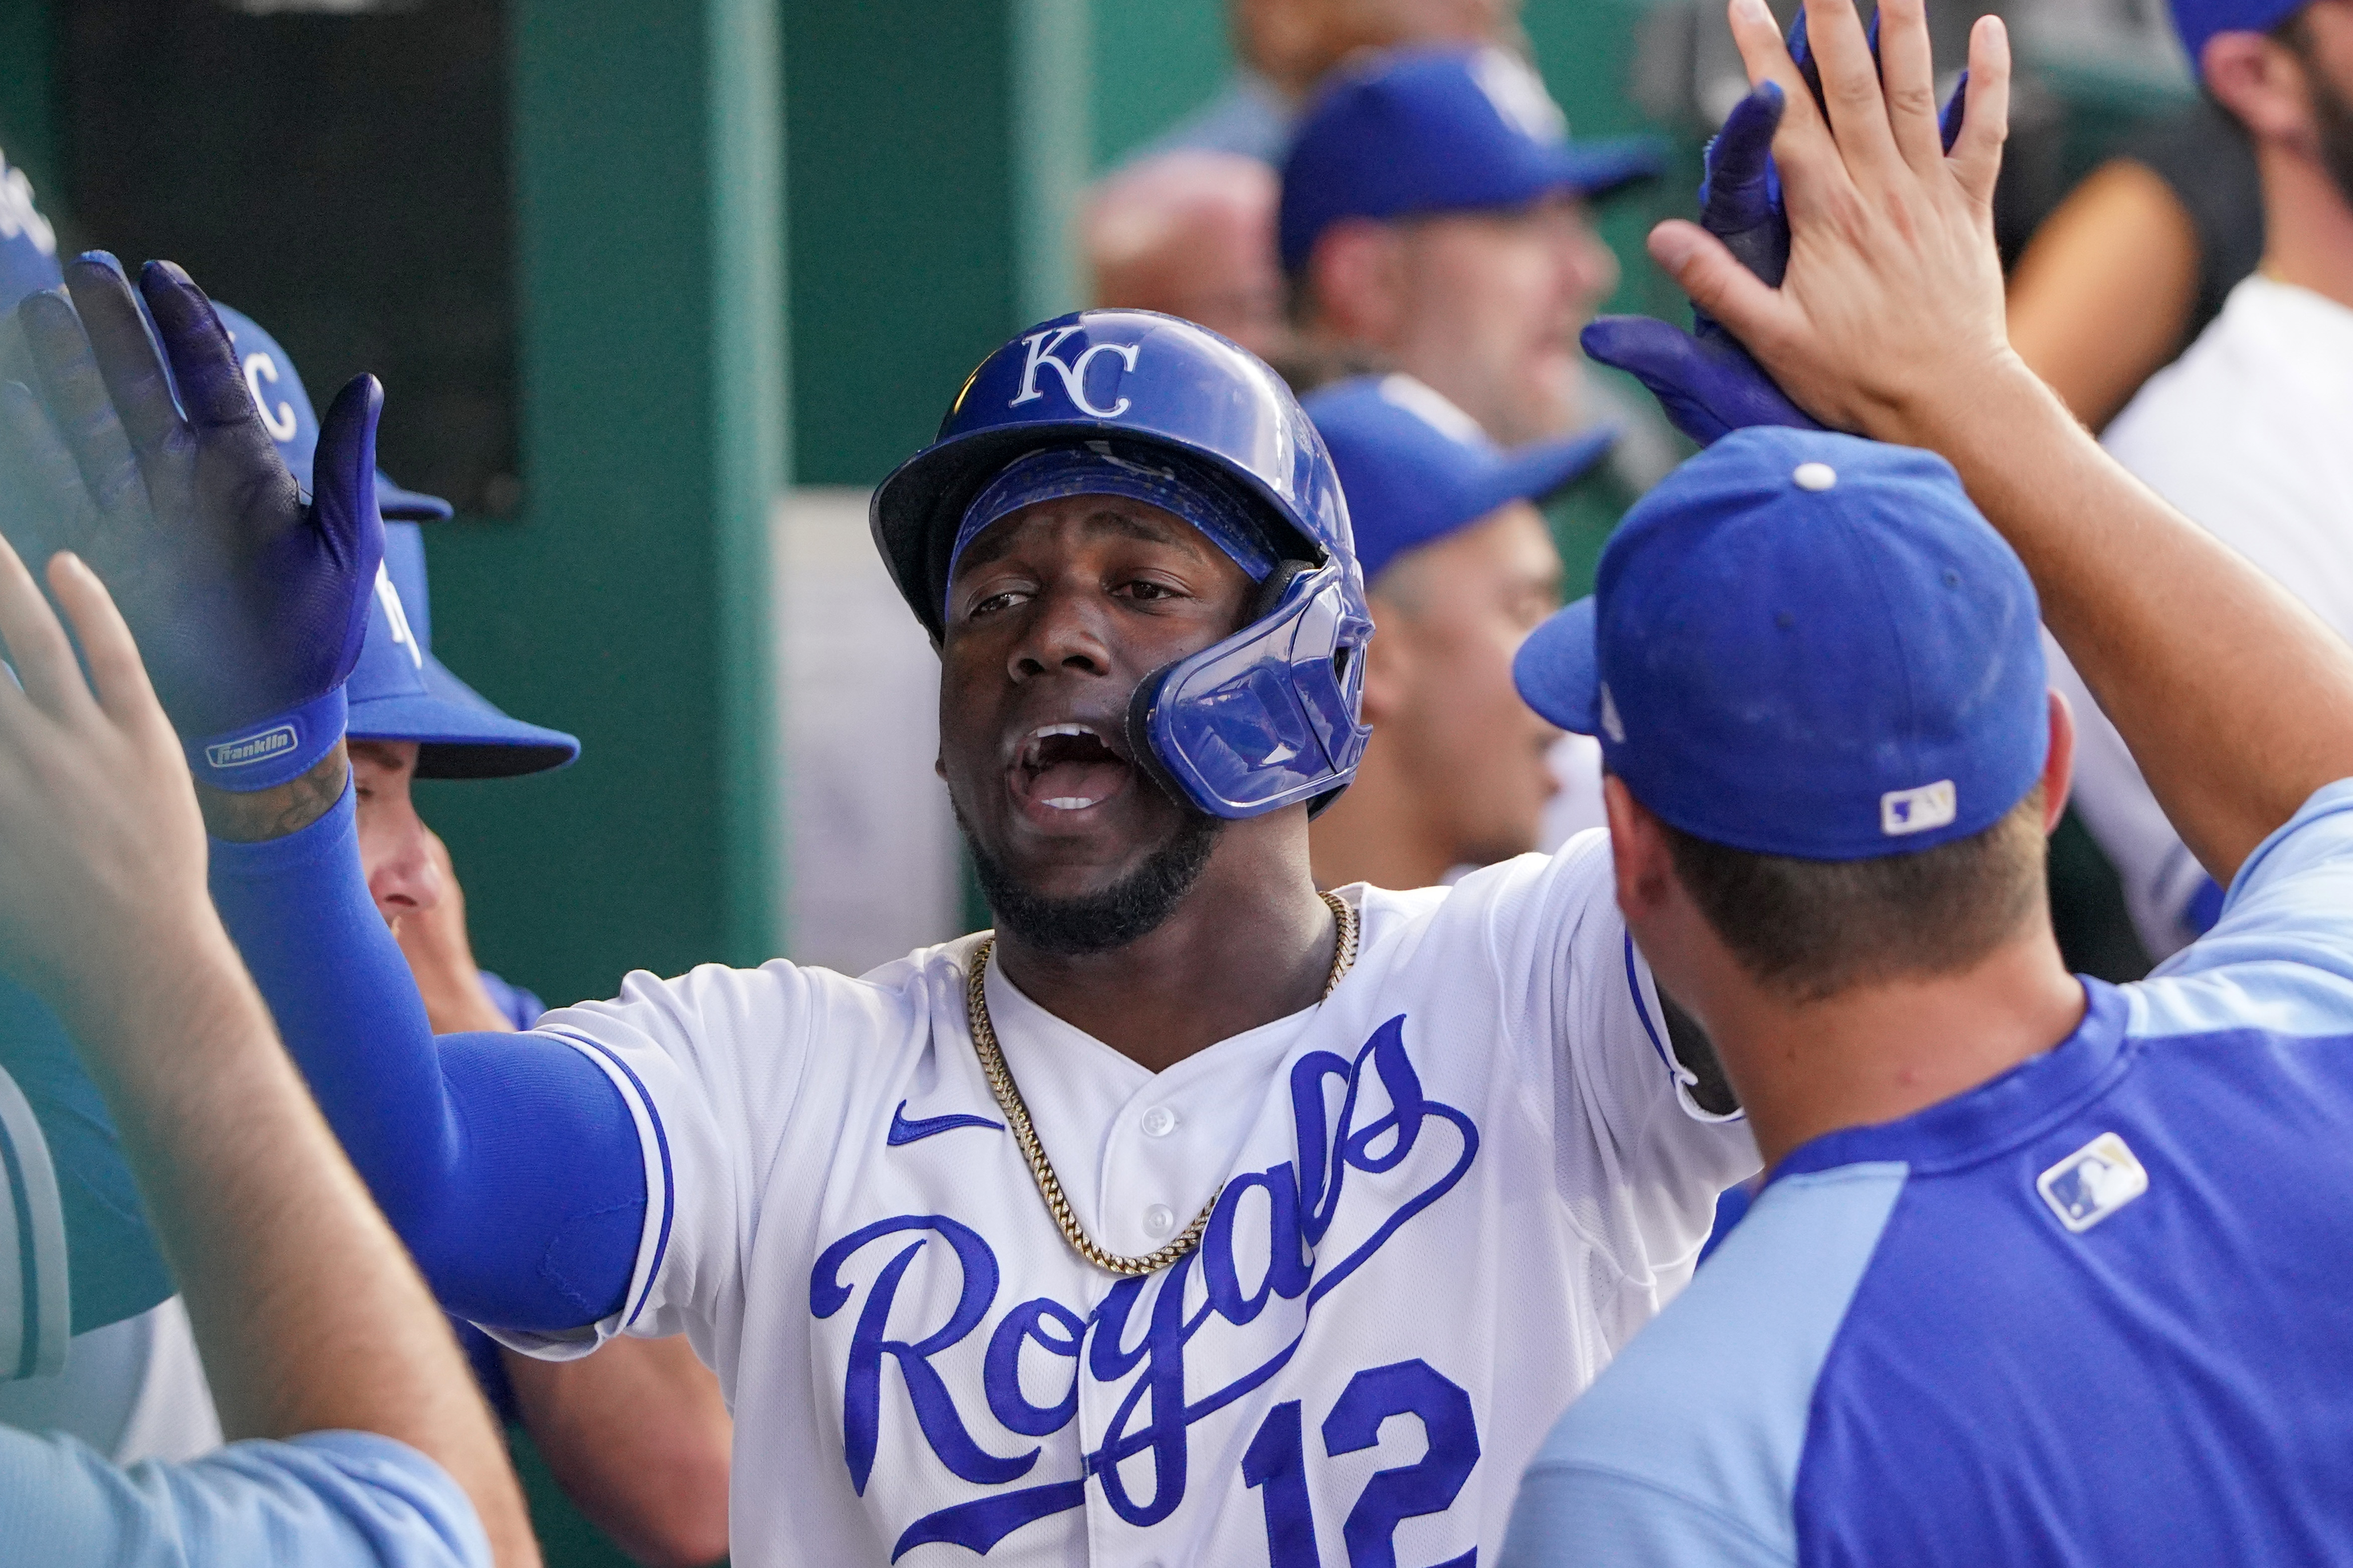 Kansas City Royals designated hitter Jorge Soler (12) is congratulated in the dugout after hitting a solo home run in the fourth inning against the Chicago White Sox at Kauffman Stadium.